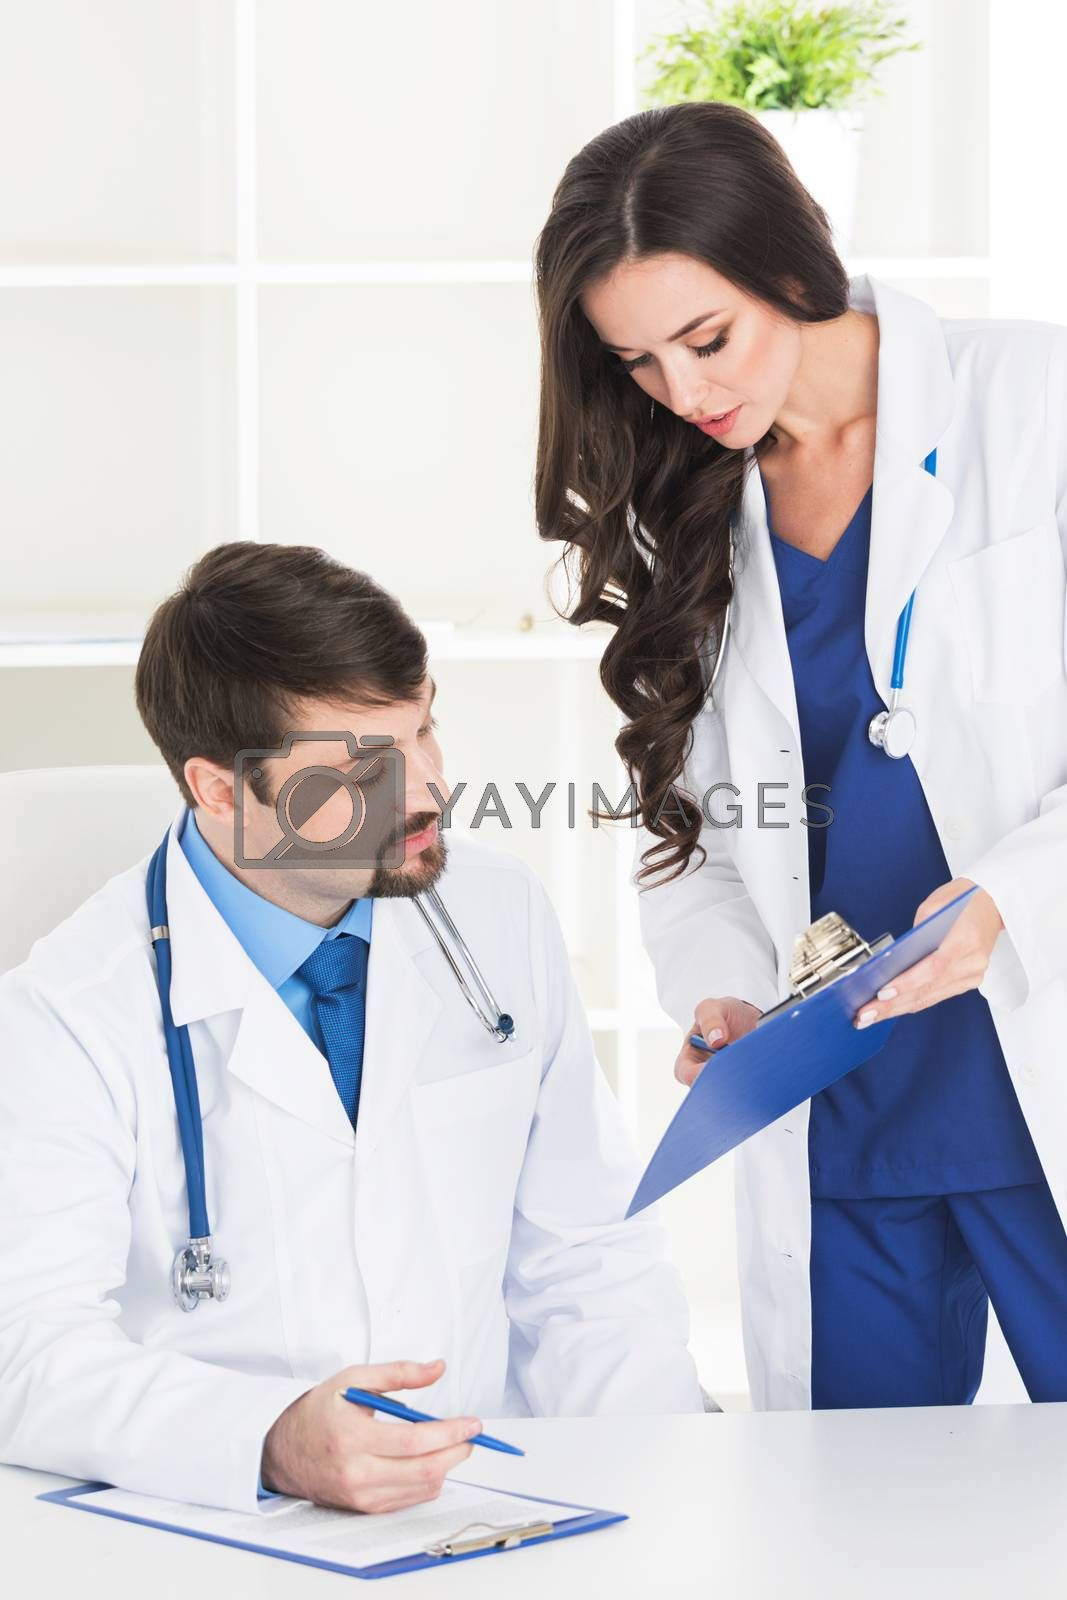 Professional medical doctor and his assistant working in the office, she is holding a clipboard and he is signing medical records